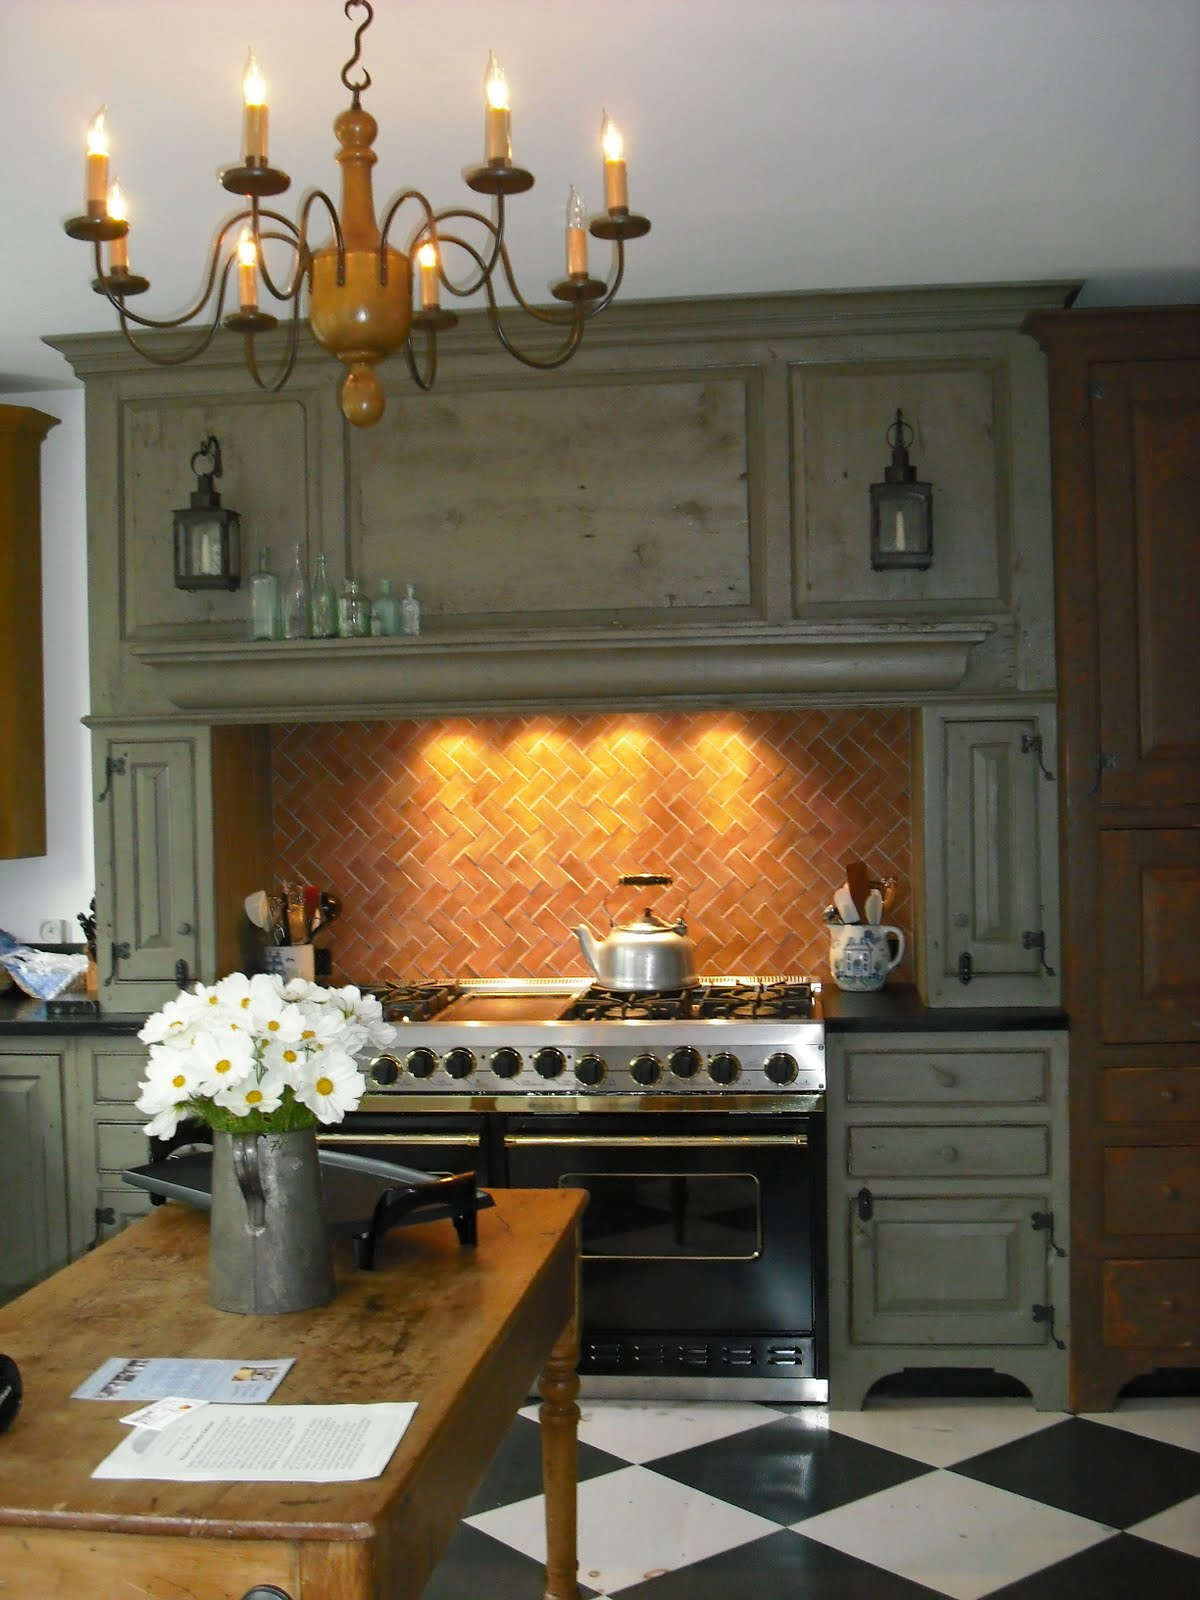 timeless kitchen cabinetry nantucket kitchen. Black Bedroom Furniture Sets. Home Design Ideas